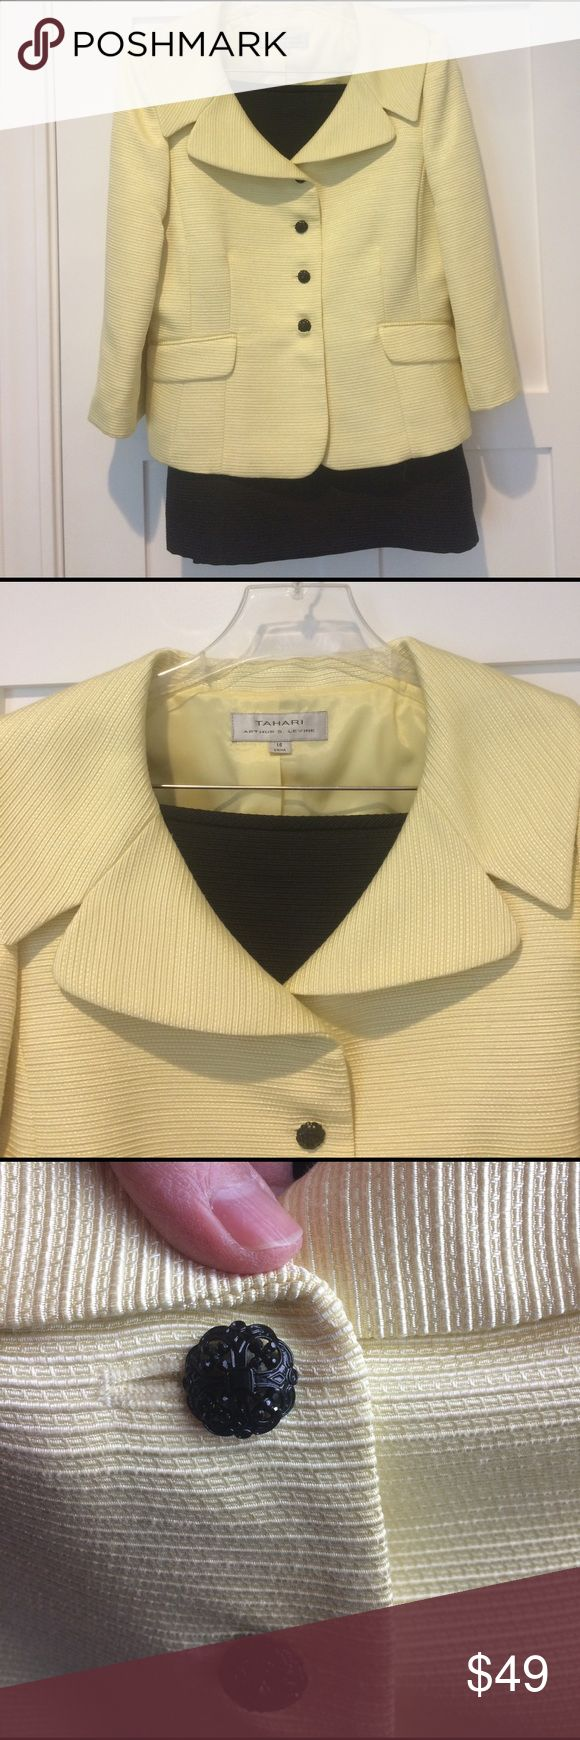 Tahari Yellow Skirt Suit Elegant skirt suit by Tahari.  Light yellow jacket with boat collar and beautiful black buttons.  Matching black skirt.  Fully lined.  3/4 sleeves.  Lovely for a spring or summer occasion...can be worn to lunch or for evening party.  Poly/cotton blend.  From Lord and Taylor suit collection.  Hardly worn.  From clean petfree home. Tahari Skirts Skirt Sets